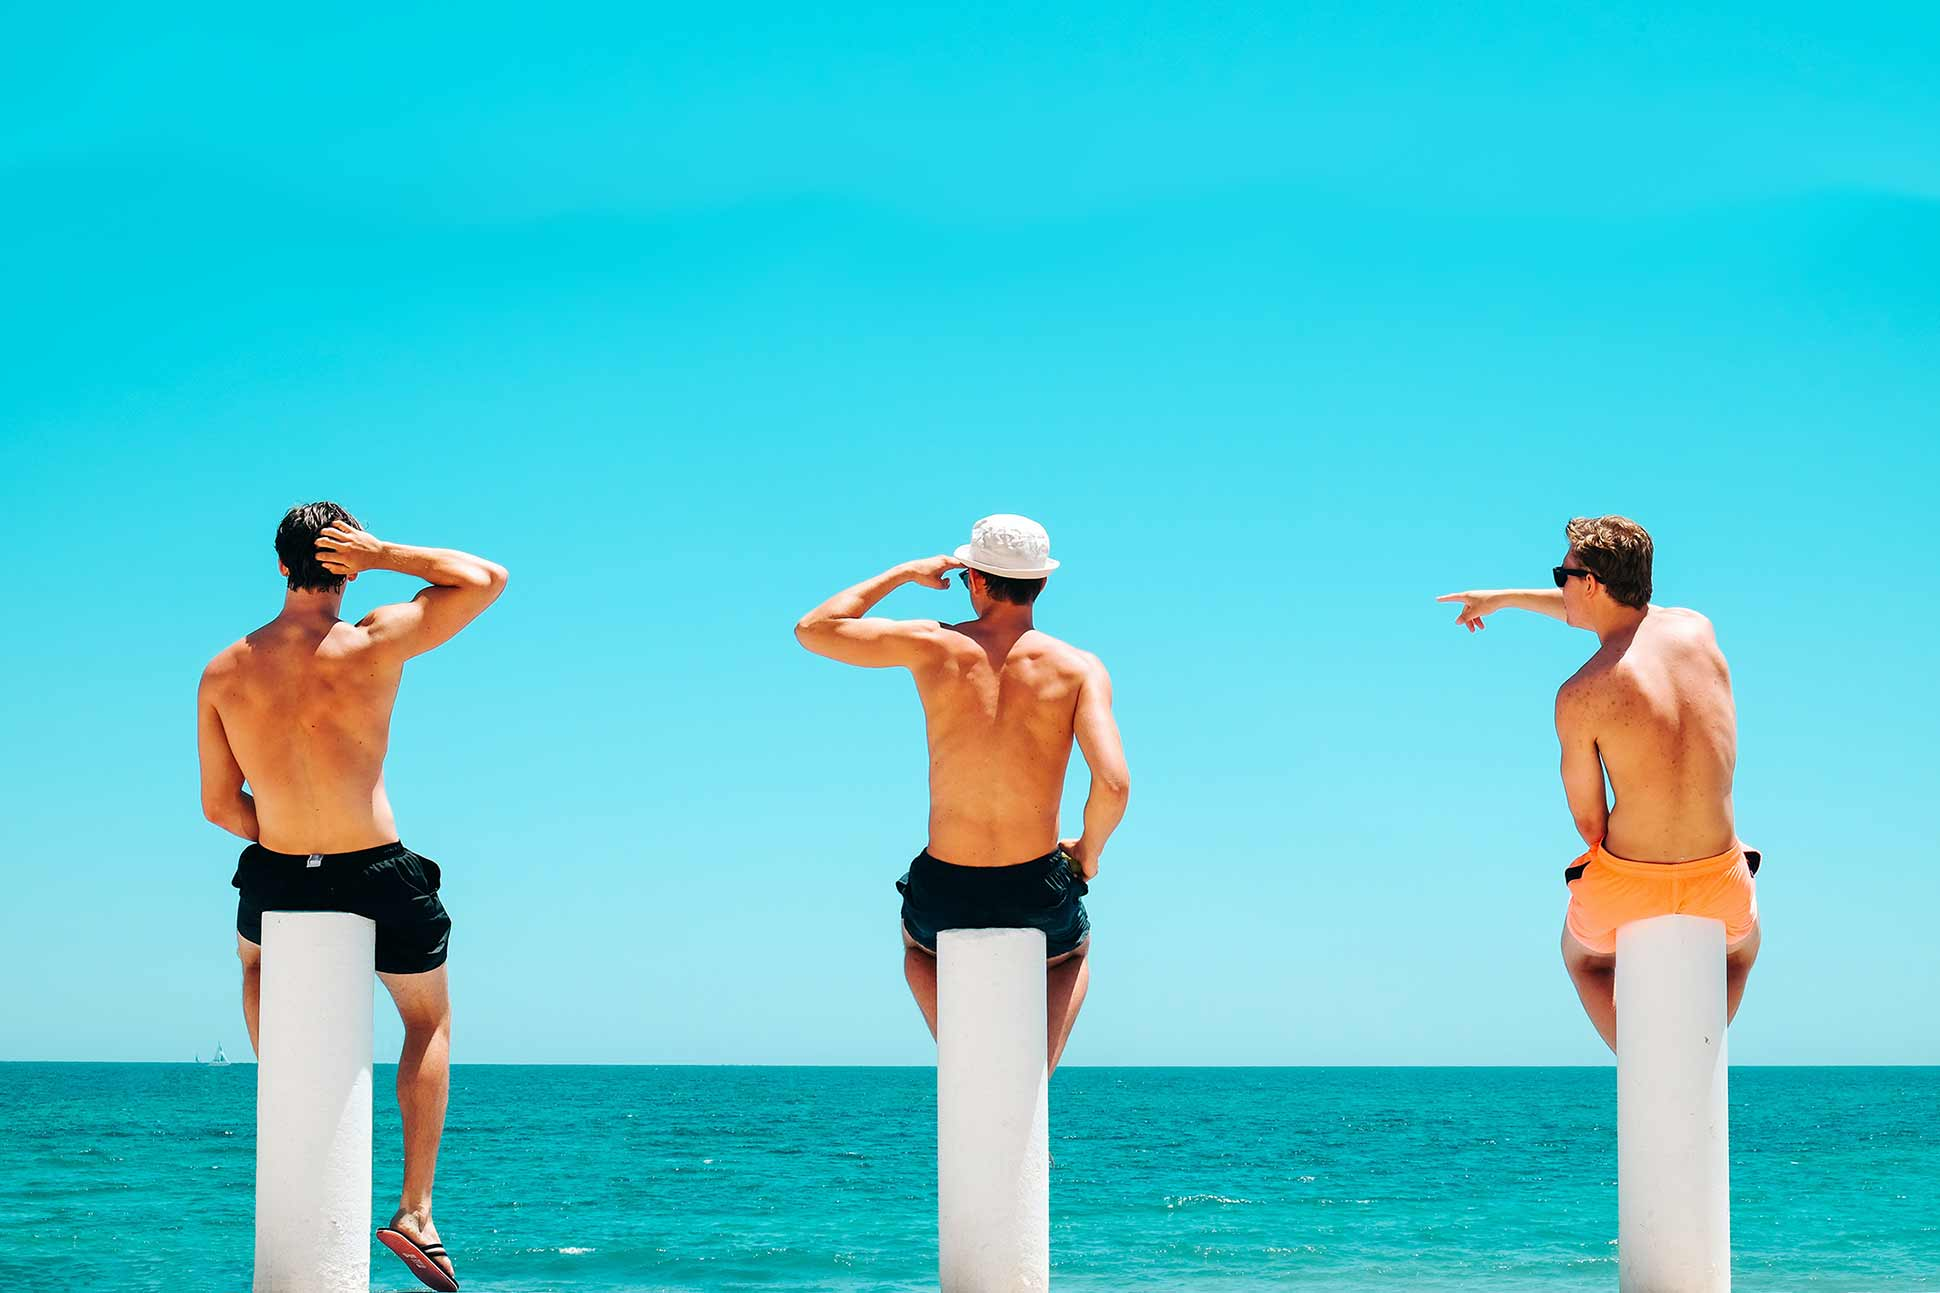 Three guys on beach for the Travel & Adventure Show